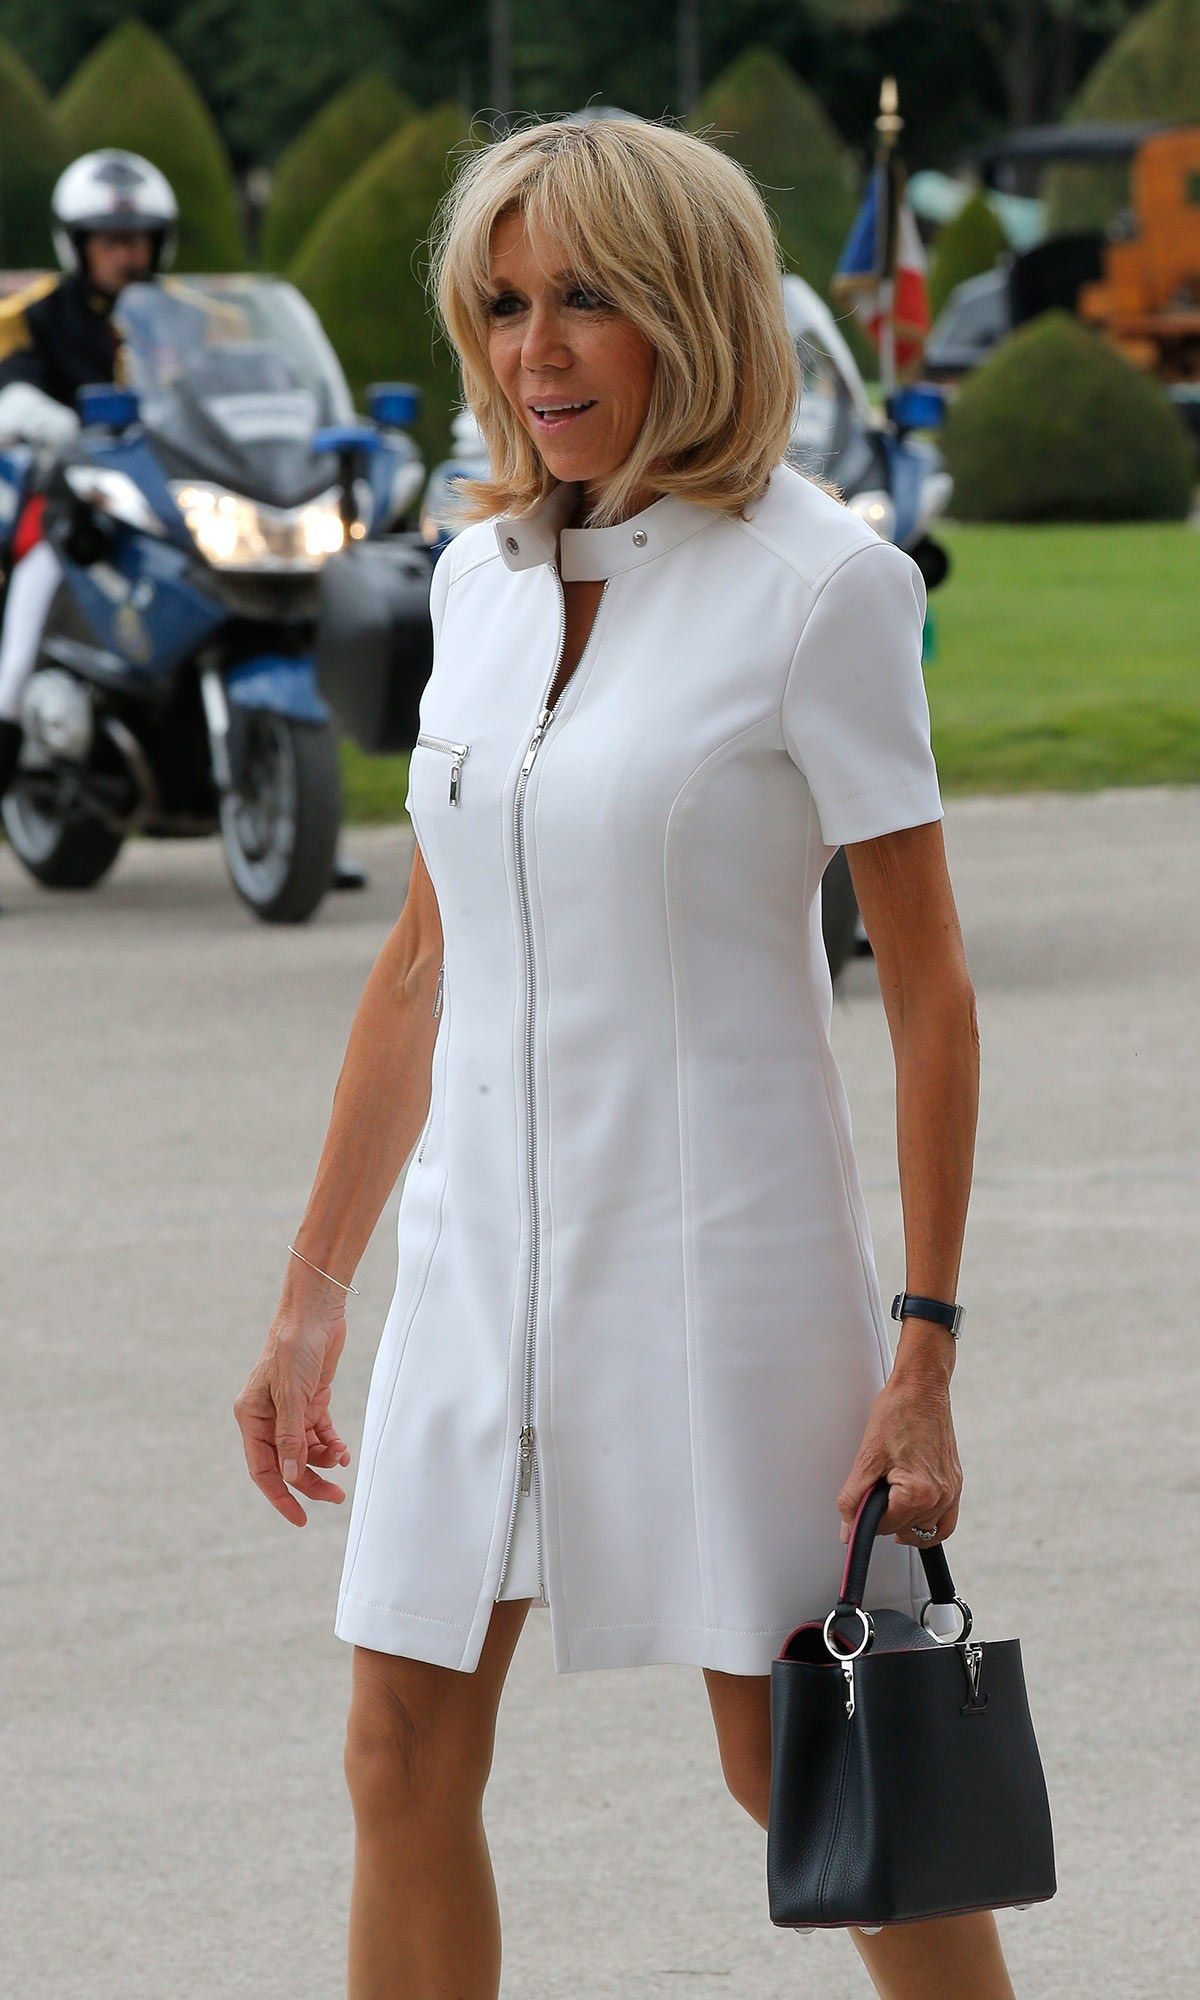 France's First Lady Brigitte Macron met America's Melania Trump in Paris  this afternoon, prompting the political version of last night's royal  fashion ' ...